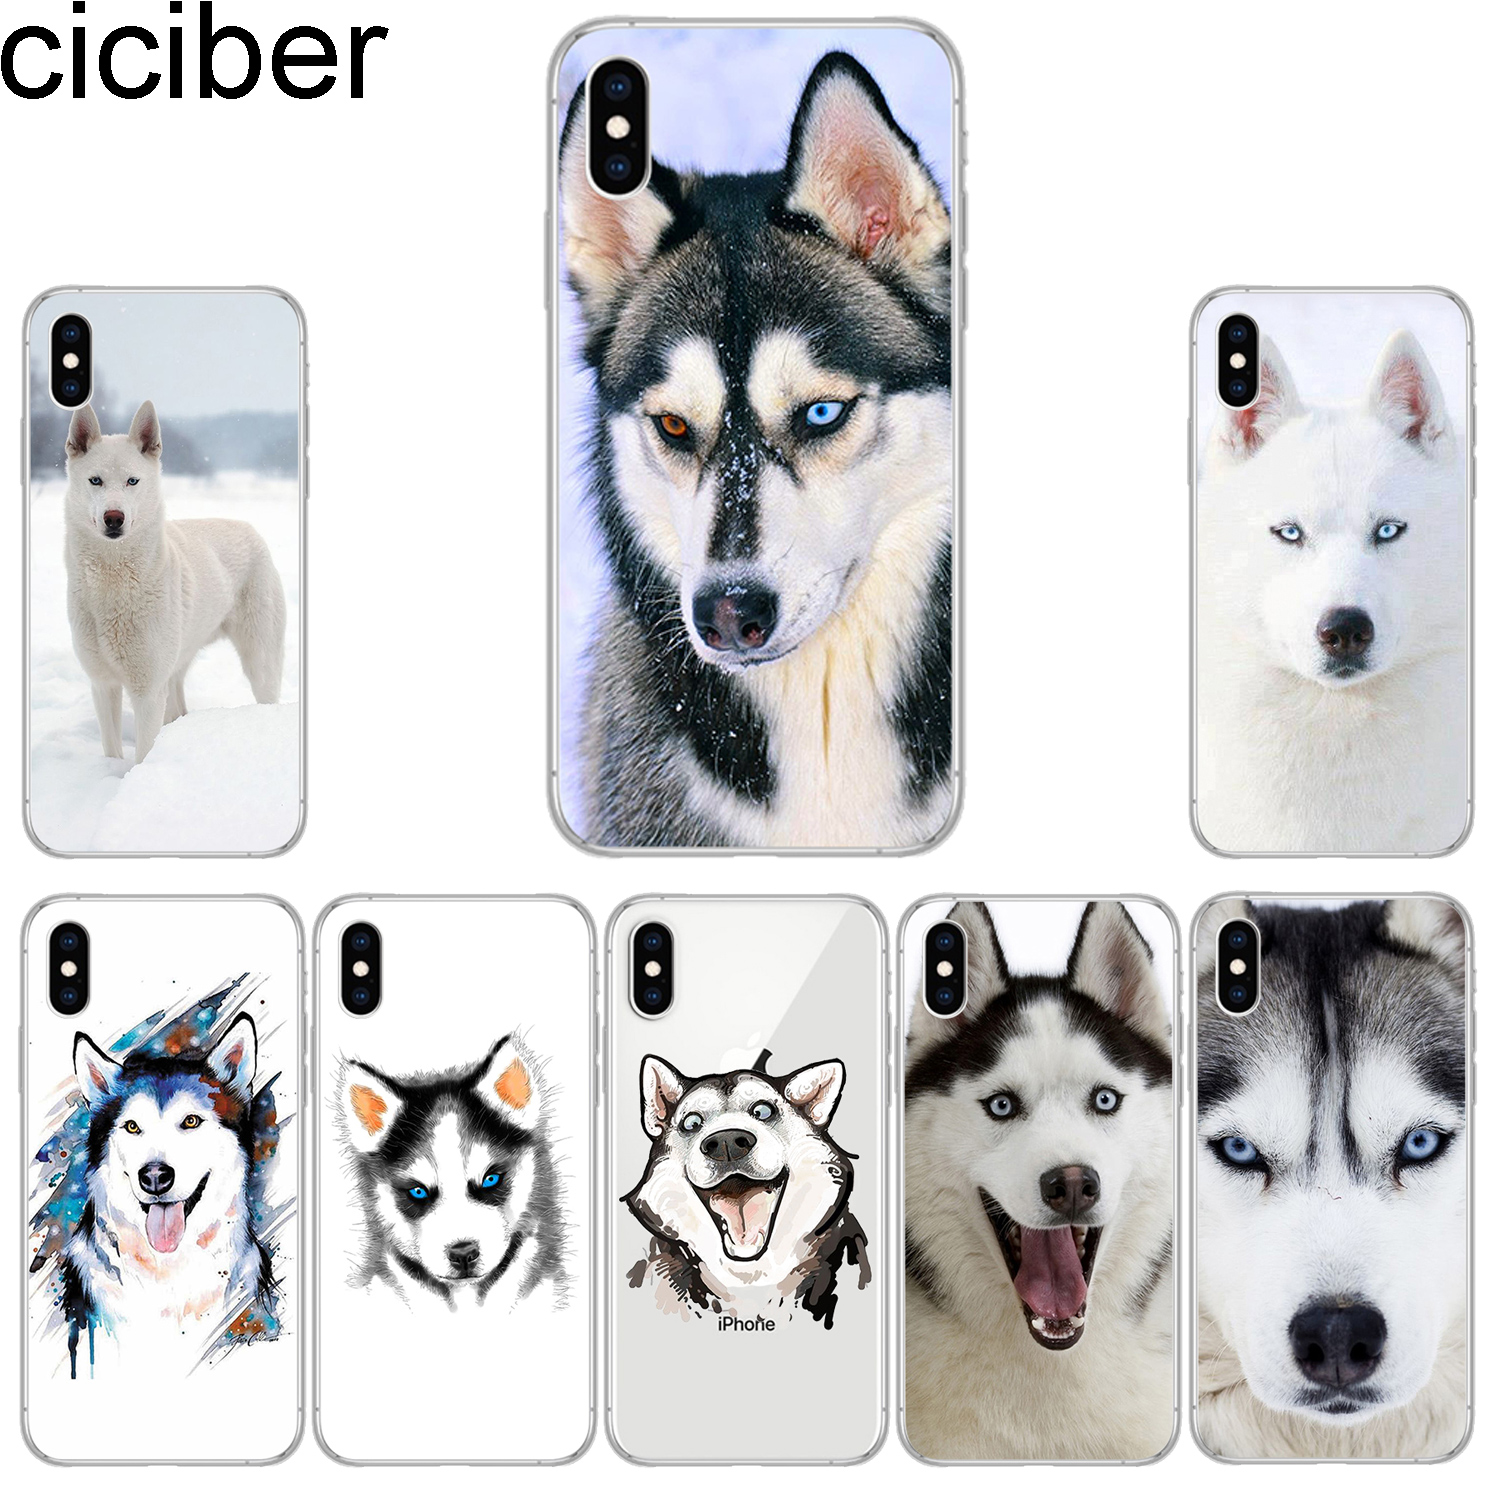 ciciber Phone Cases for IPhone 7 8 6 6s Plus SE 5s X Xs XR XS Max Soft TPU Cover for IPhone 11 Pro Max <font><b>Siberian</b></font> <font><b>husky</b></font> Fundas image